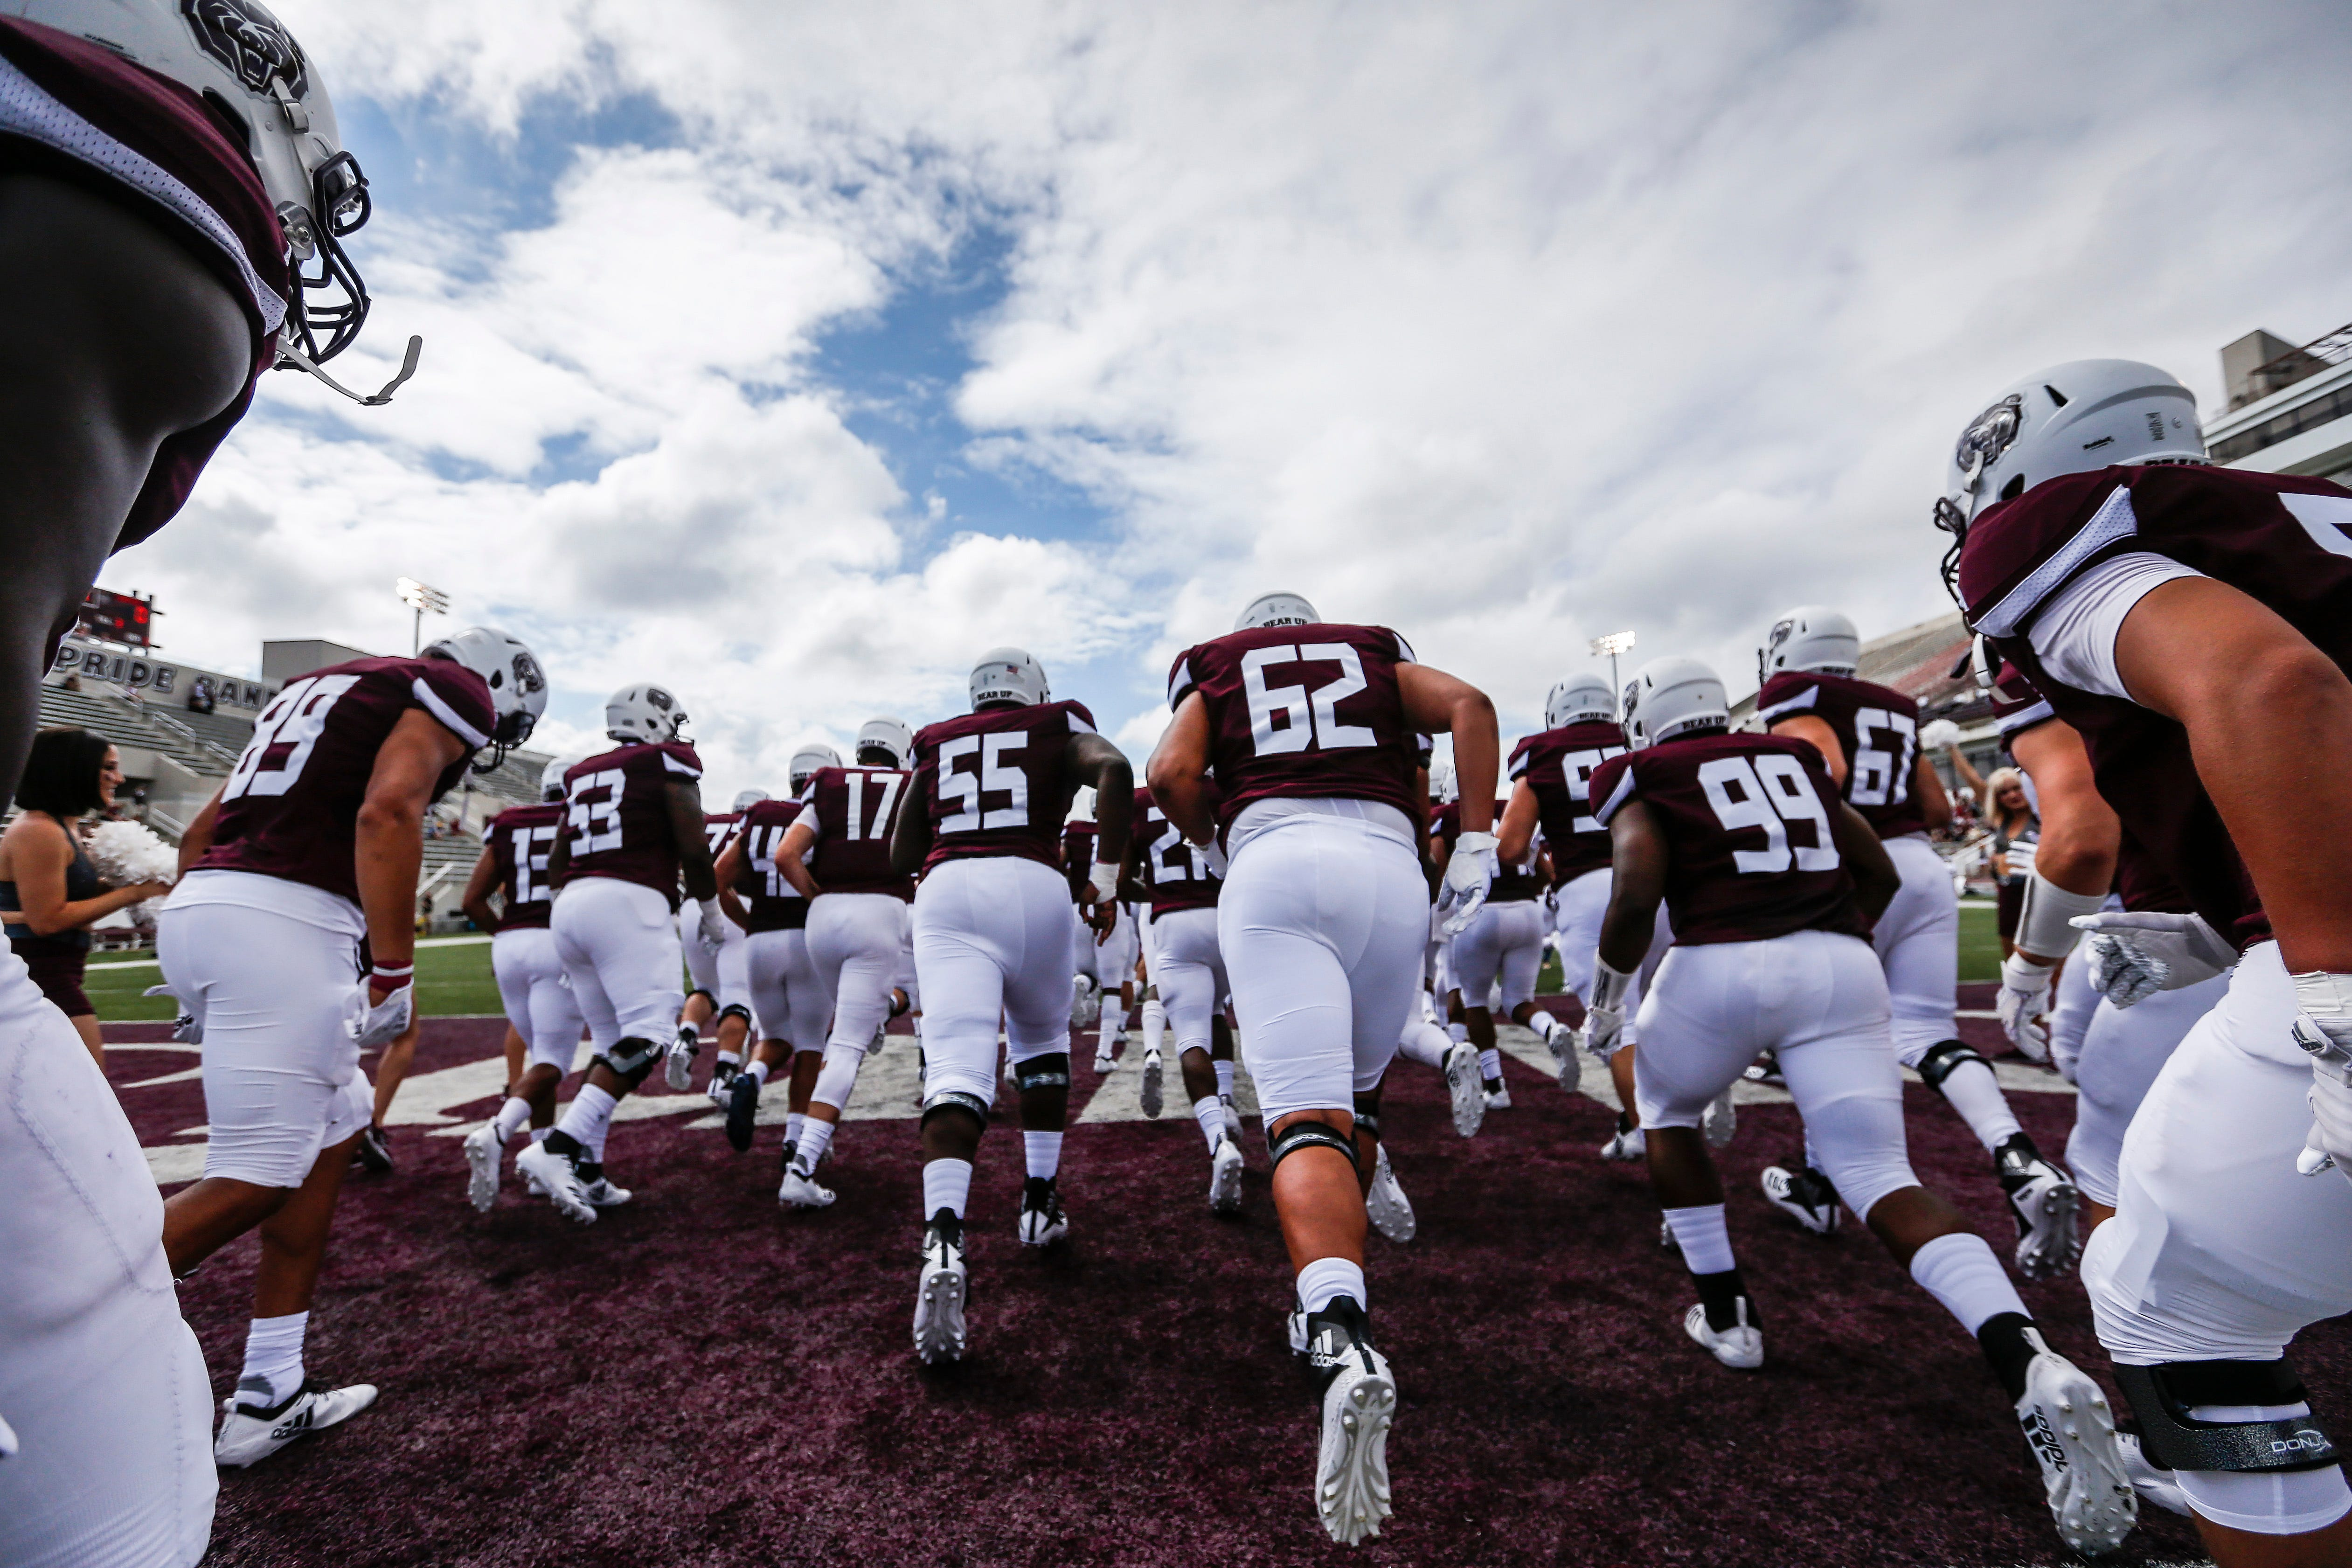 The Missouri State Bears take the field in the home opener at Plaster Stadium against Lincoln University on Thursday, Sep. 6, 2018.